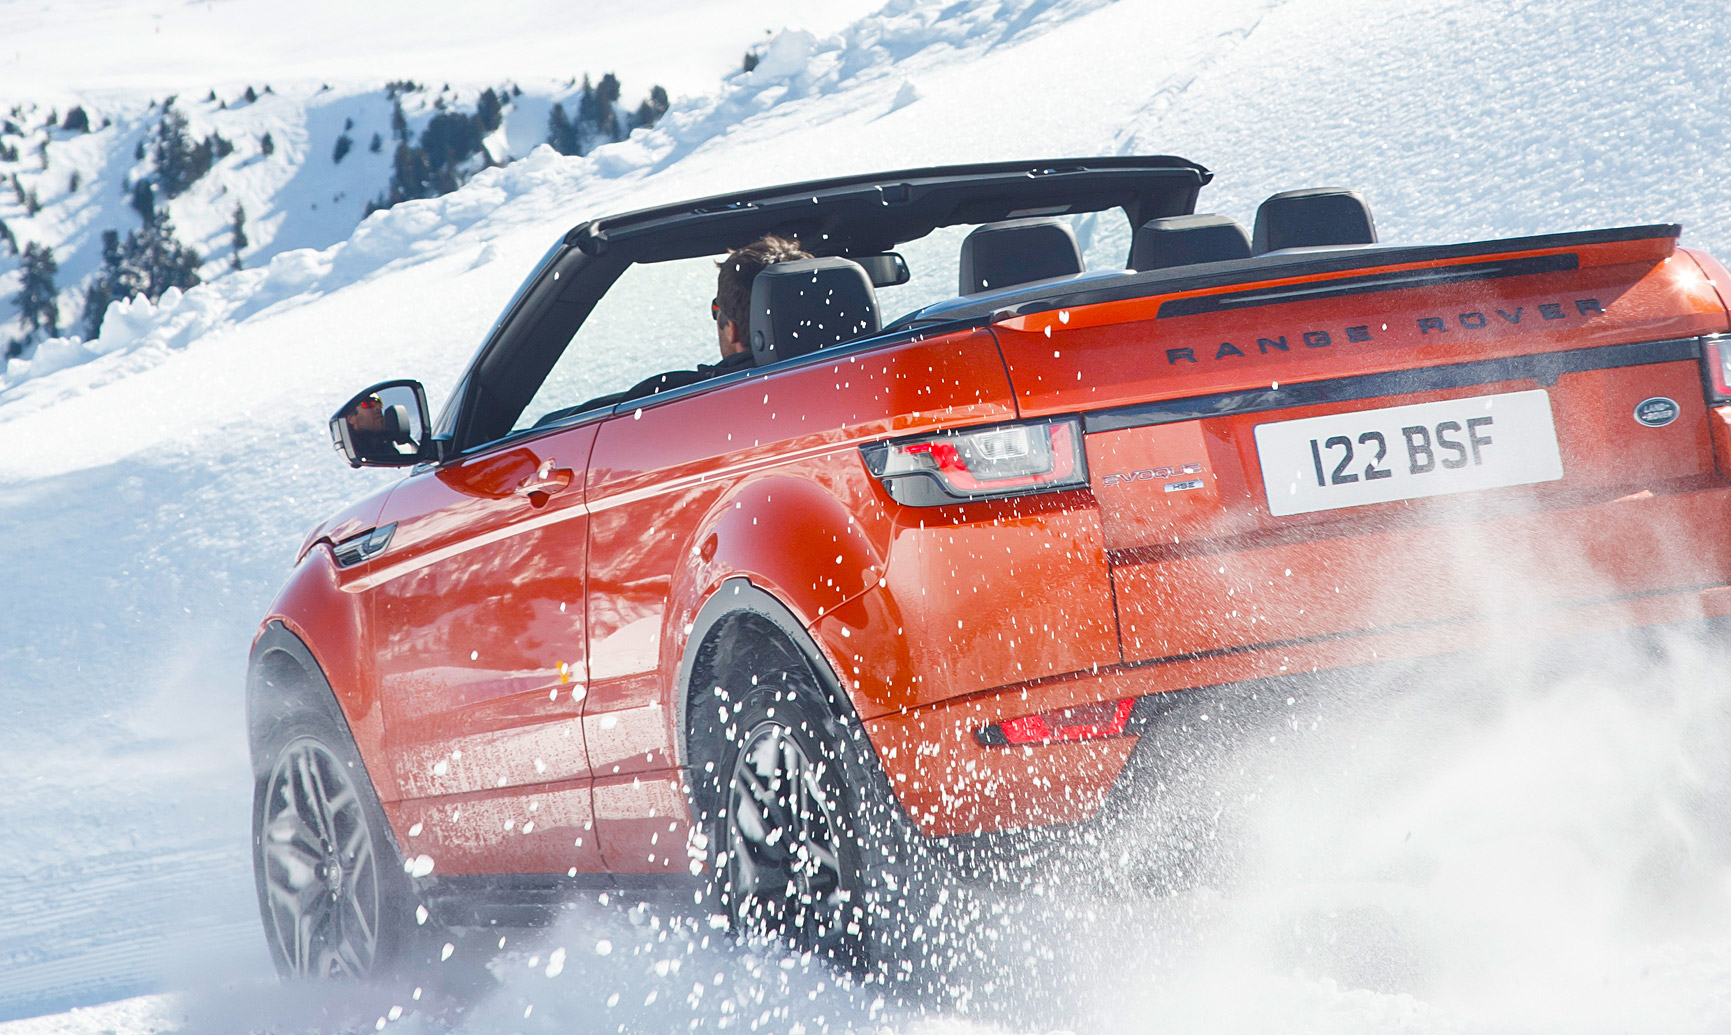 How Well Does The Range Rover Evoque Convertible Perform at 5,732 ft?